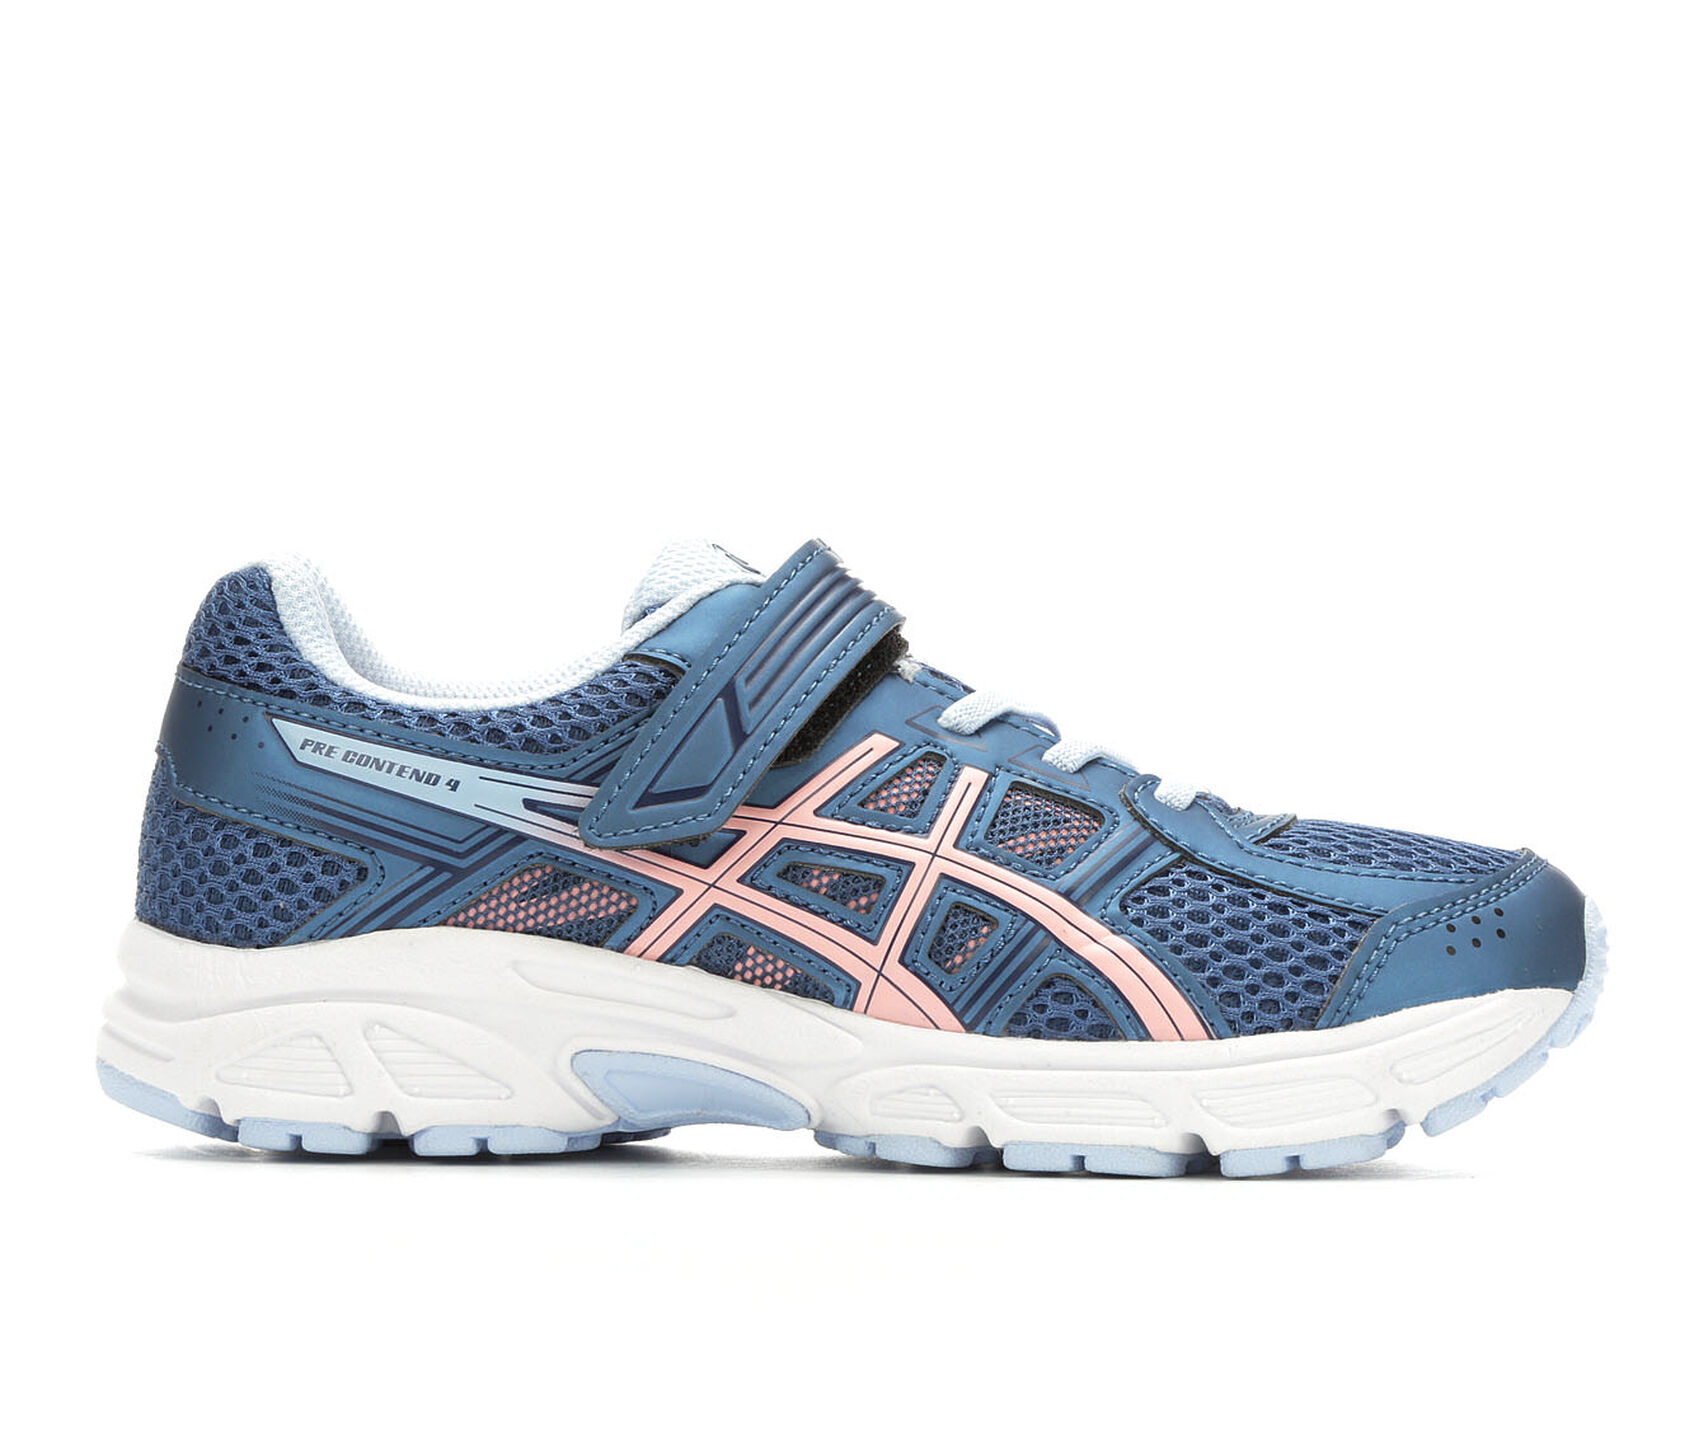 1fa622c4a8 Girls' ASICS Little Kid Pre-Contend 4 Running Shoes | Shoe Carnival